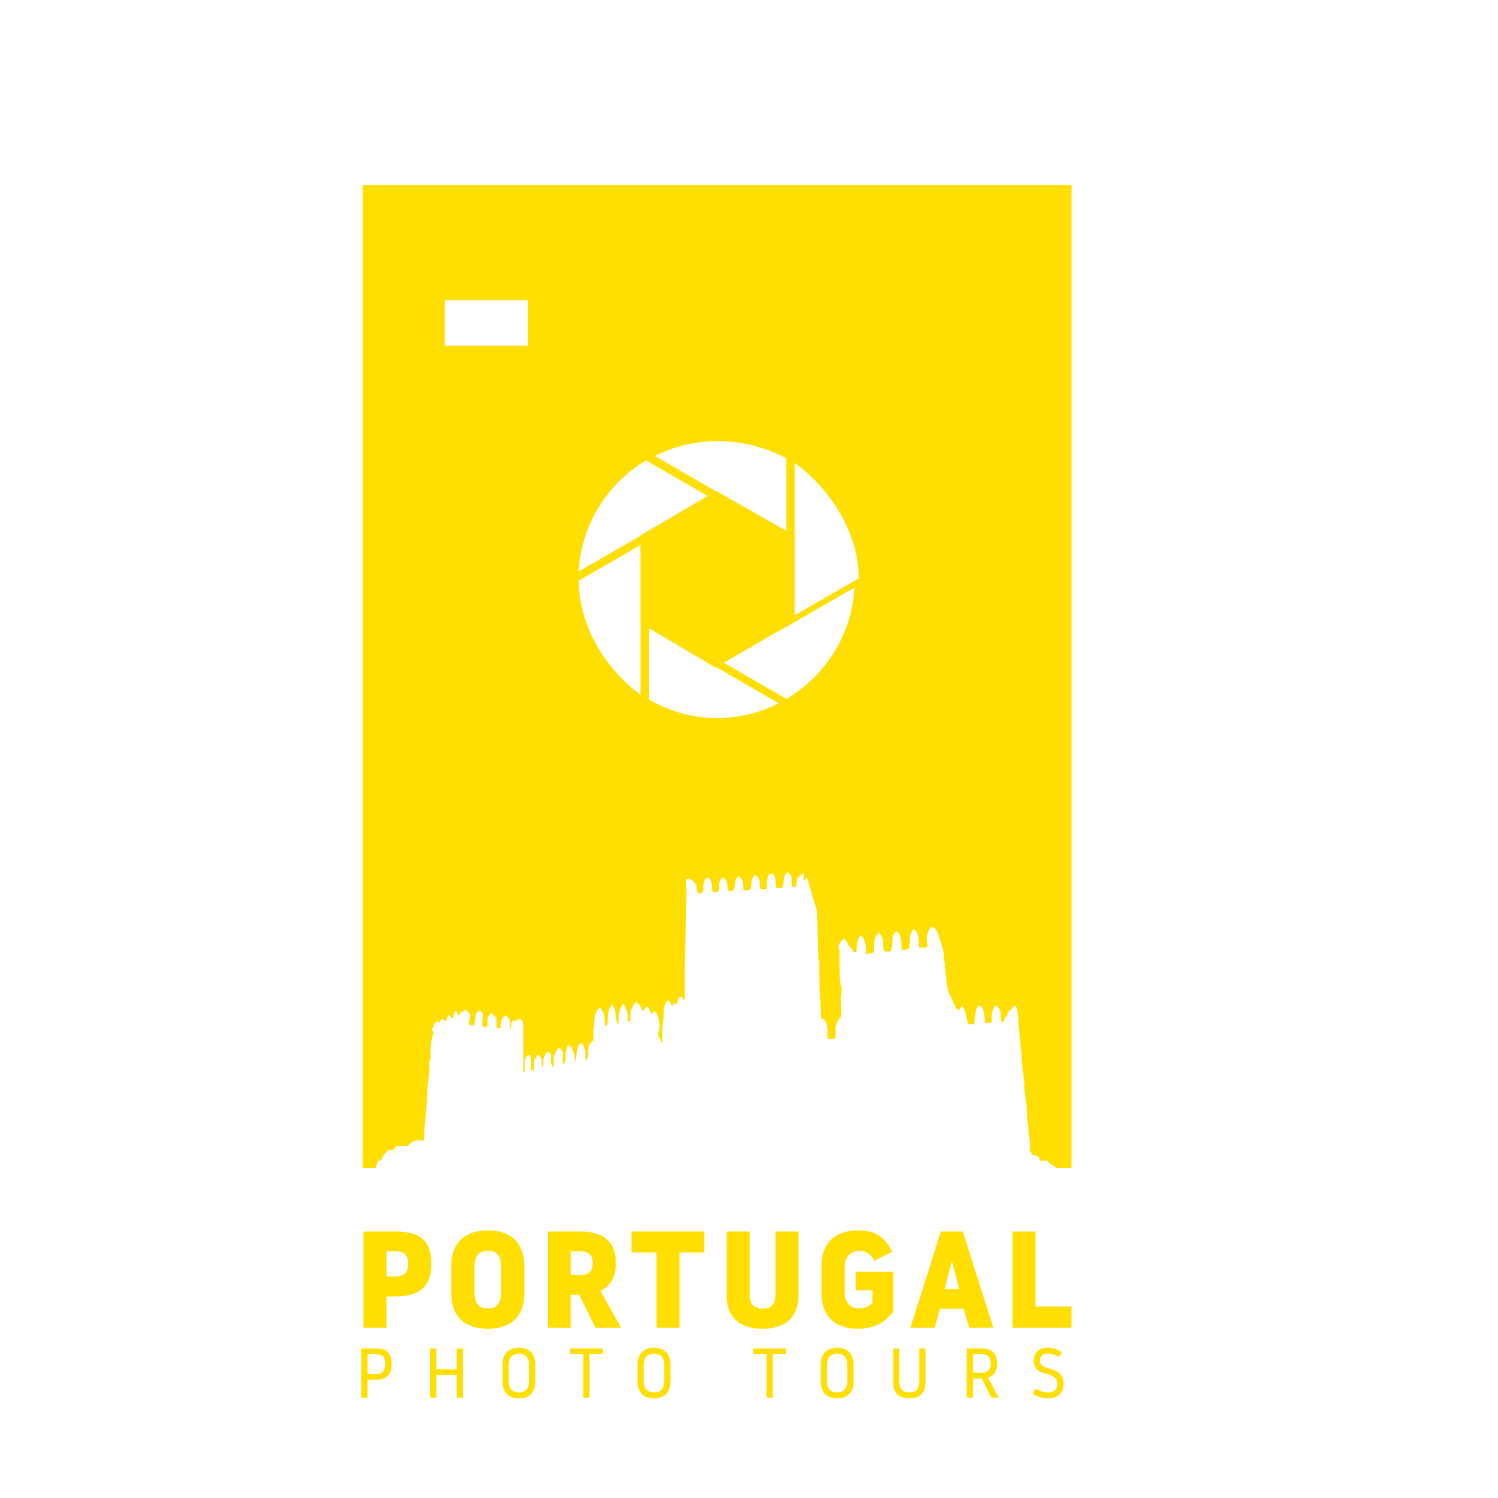 Portugal Photo Tours